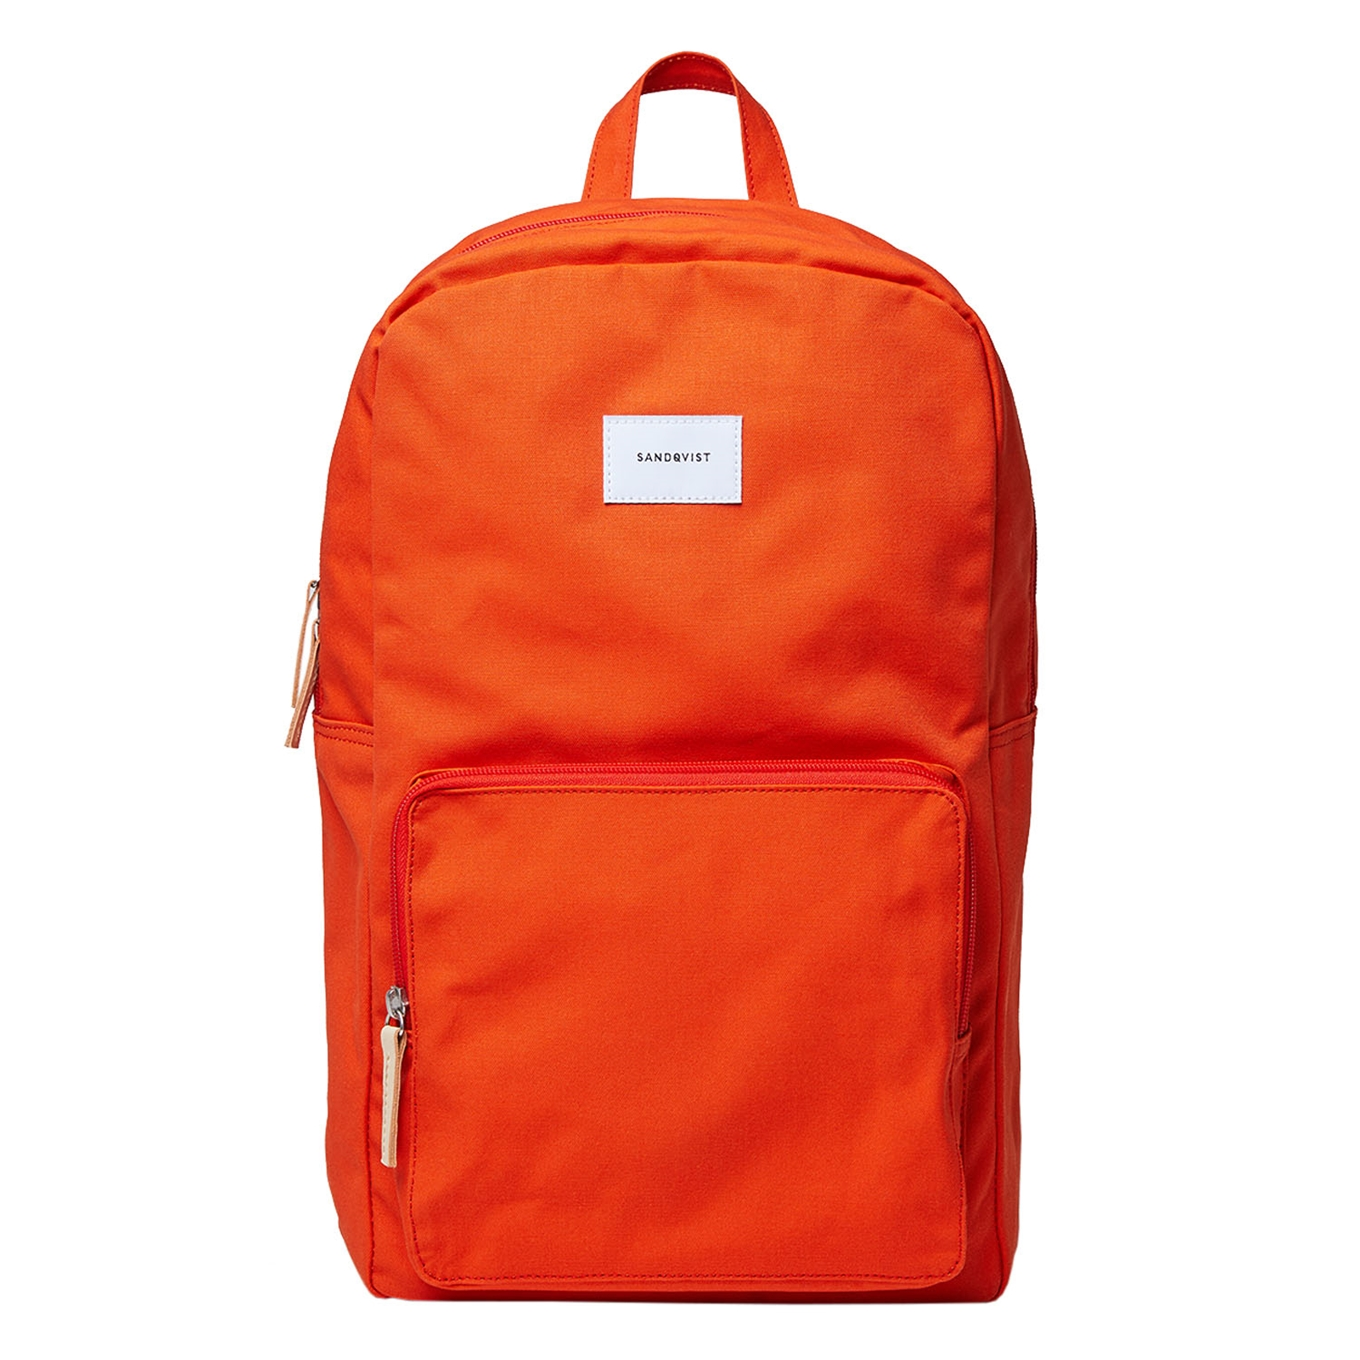 Sandqvist Kim Backpack poppy red